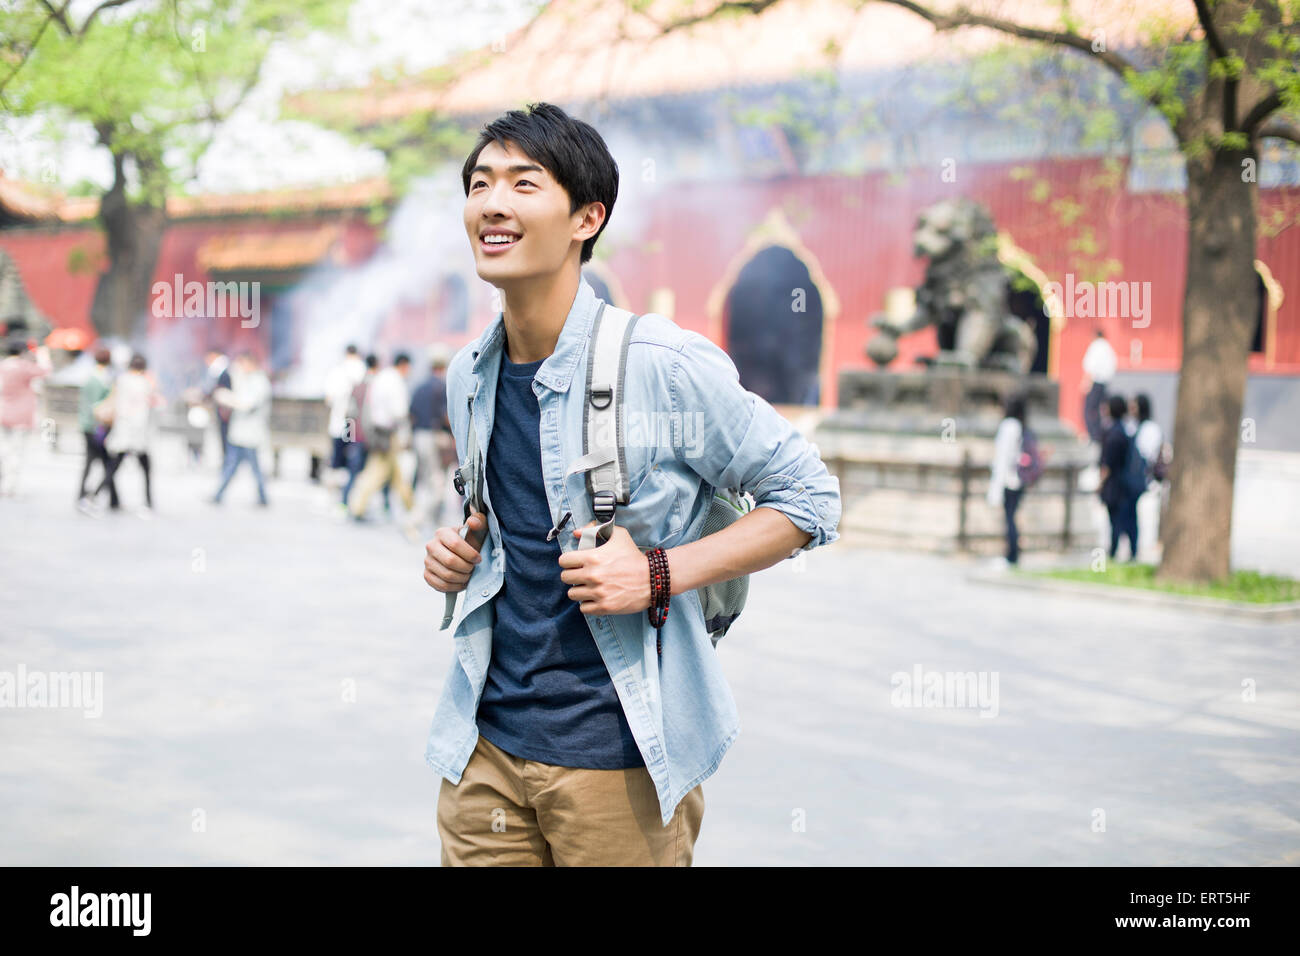 732446c558 Young man travelling at the Lama Temple Stock Photo  83509819 - Alamy